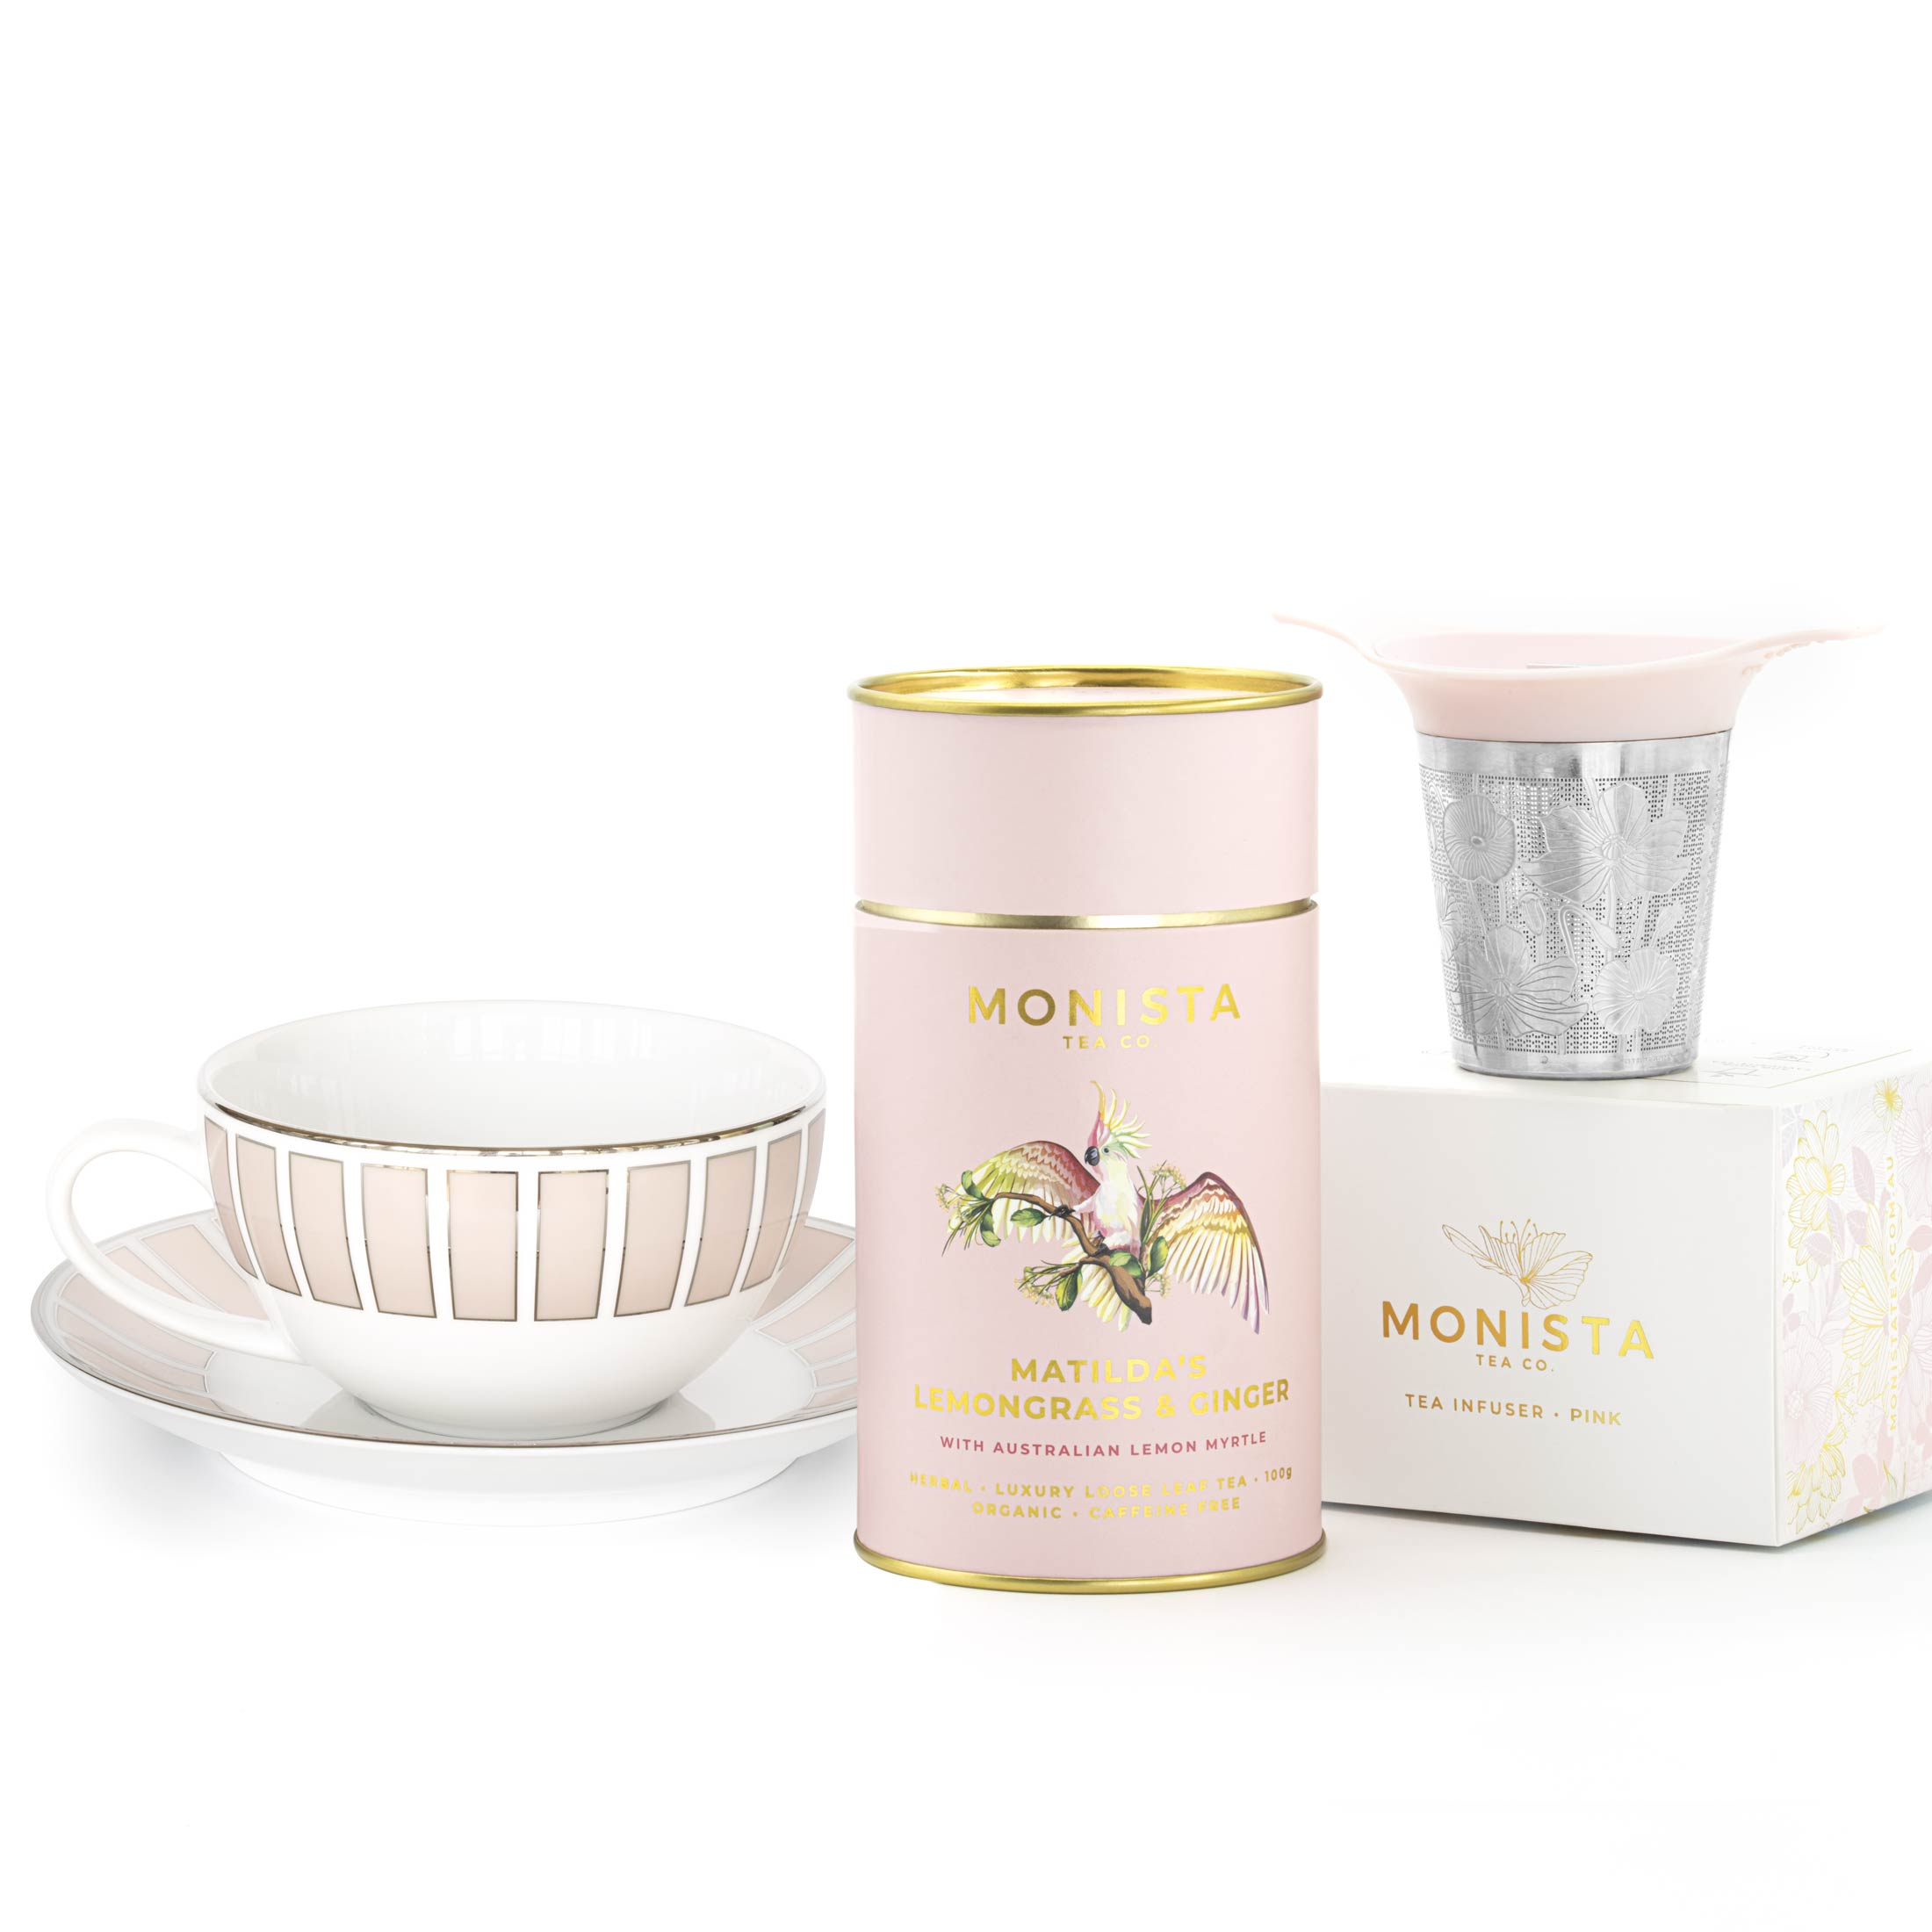 tea cup and saucer with matilda's lemongrass and ginger tea and infuser